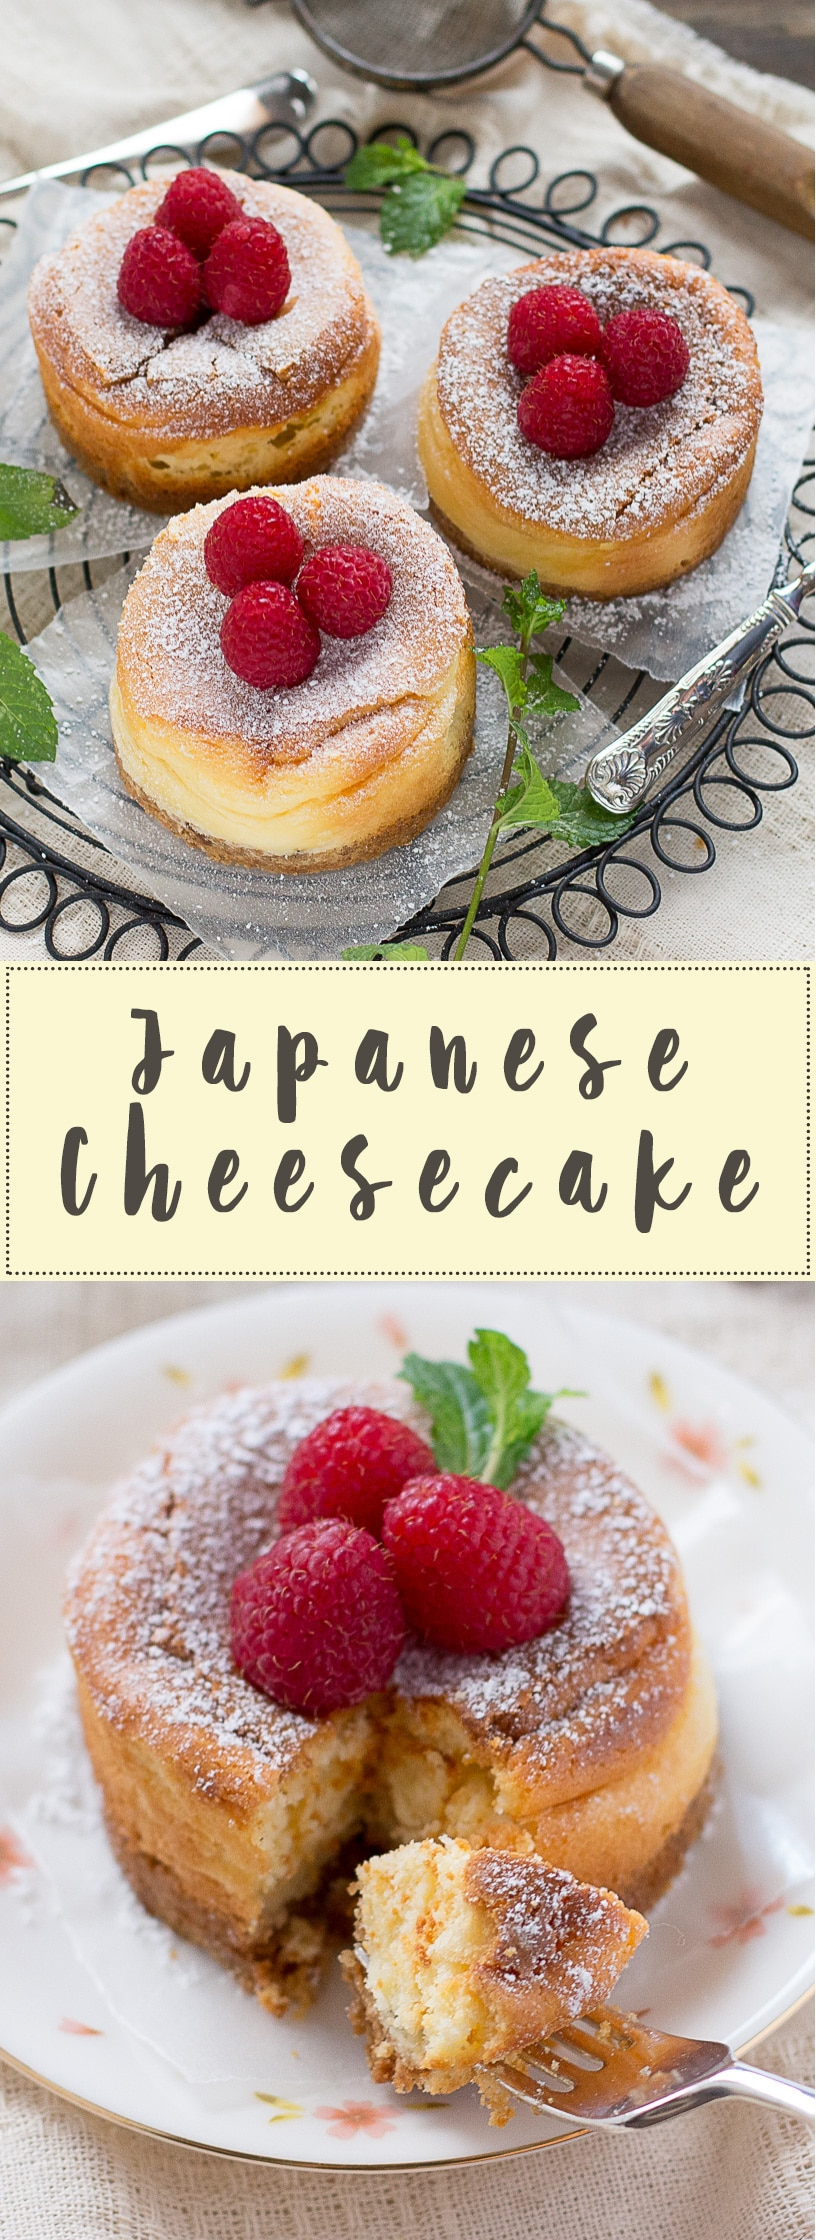 Rich & Creamy Japanese Cheesecakes- Easy and delicious